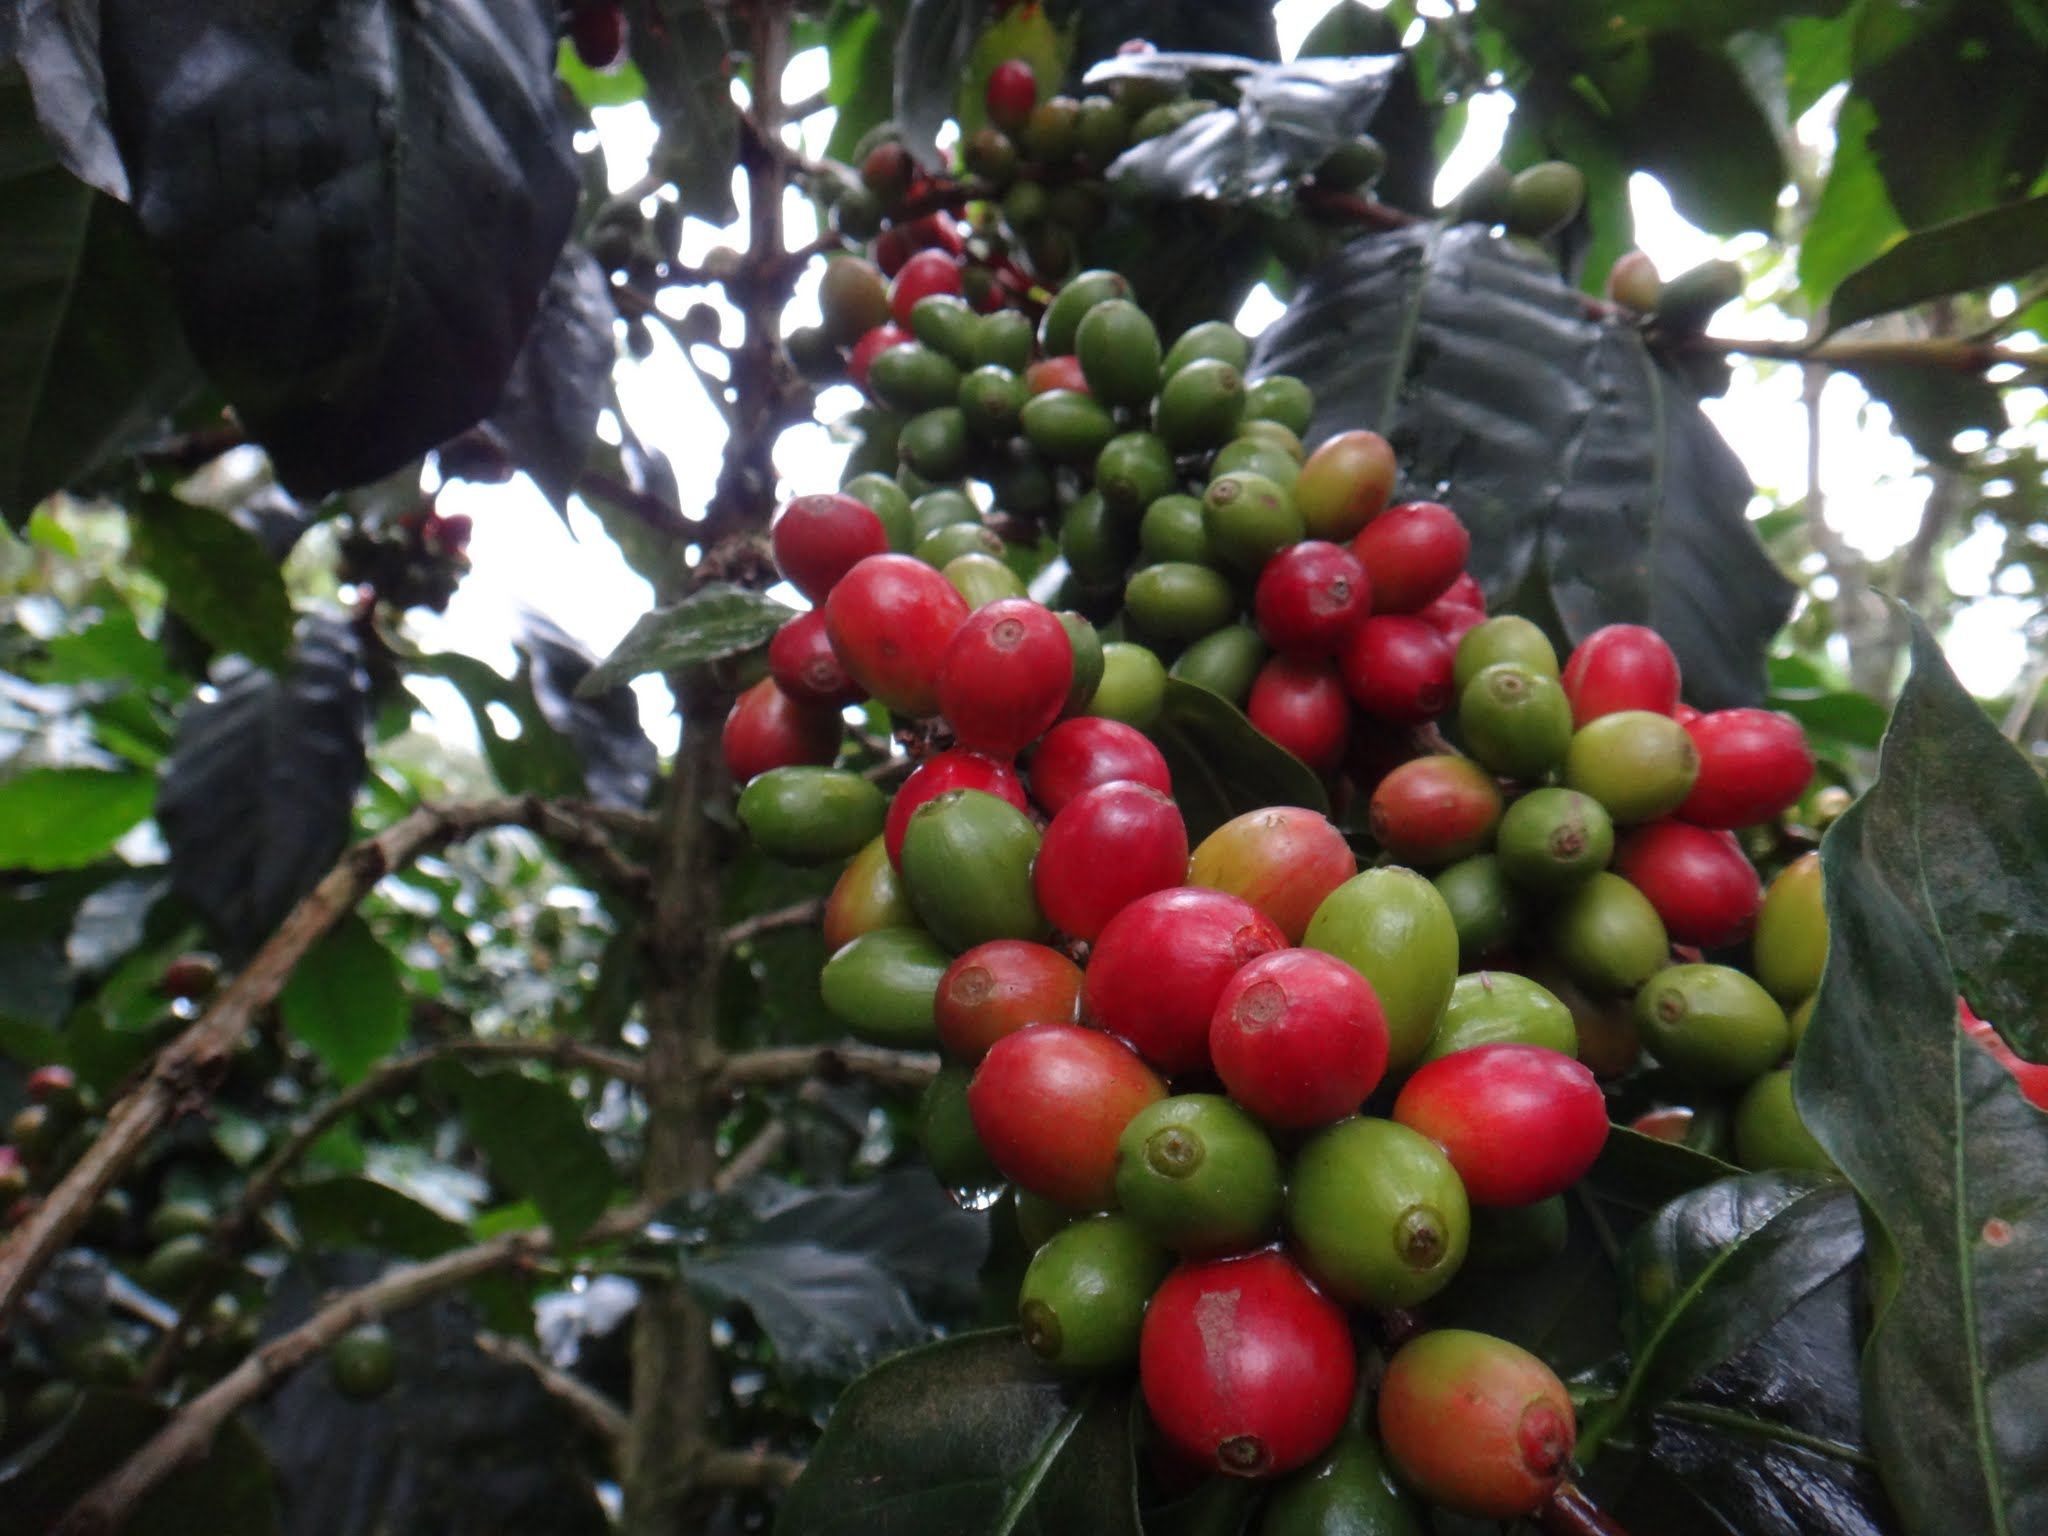 flor-del-pino-honduras-fairtrade-coffee-31